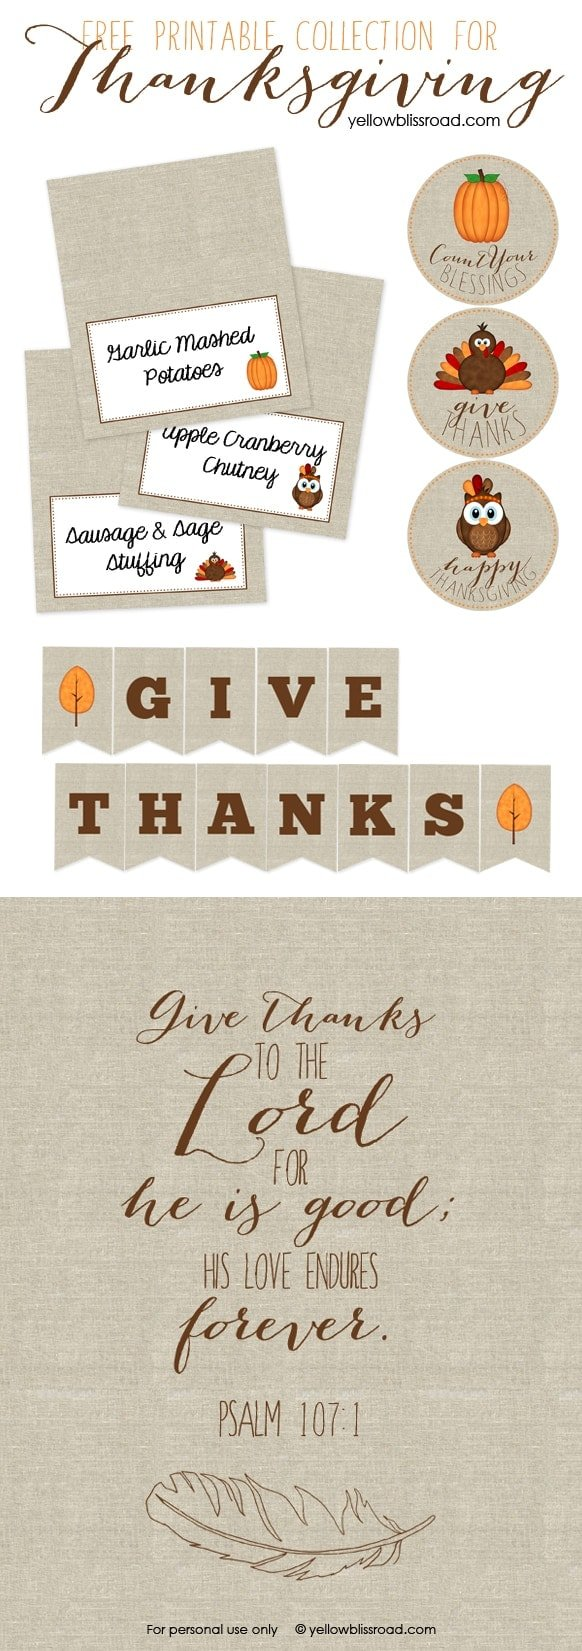 free printables for thanksgiving yellow bliss road